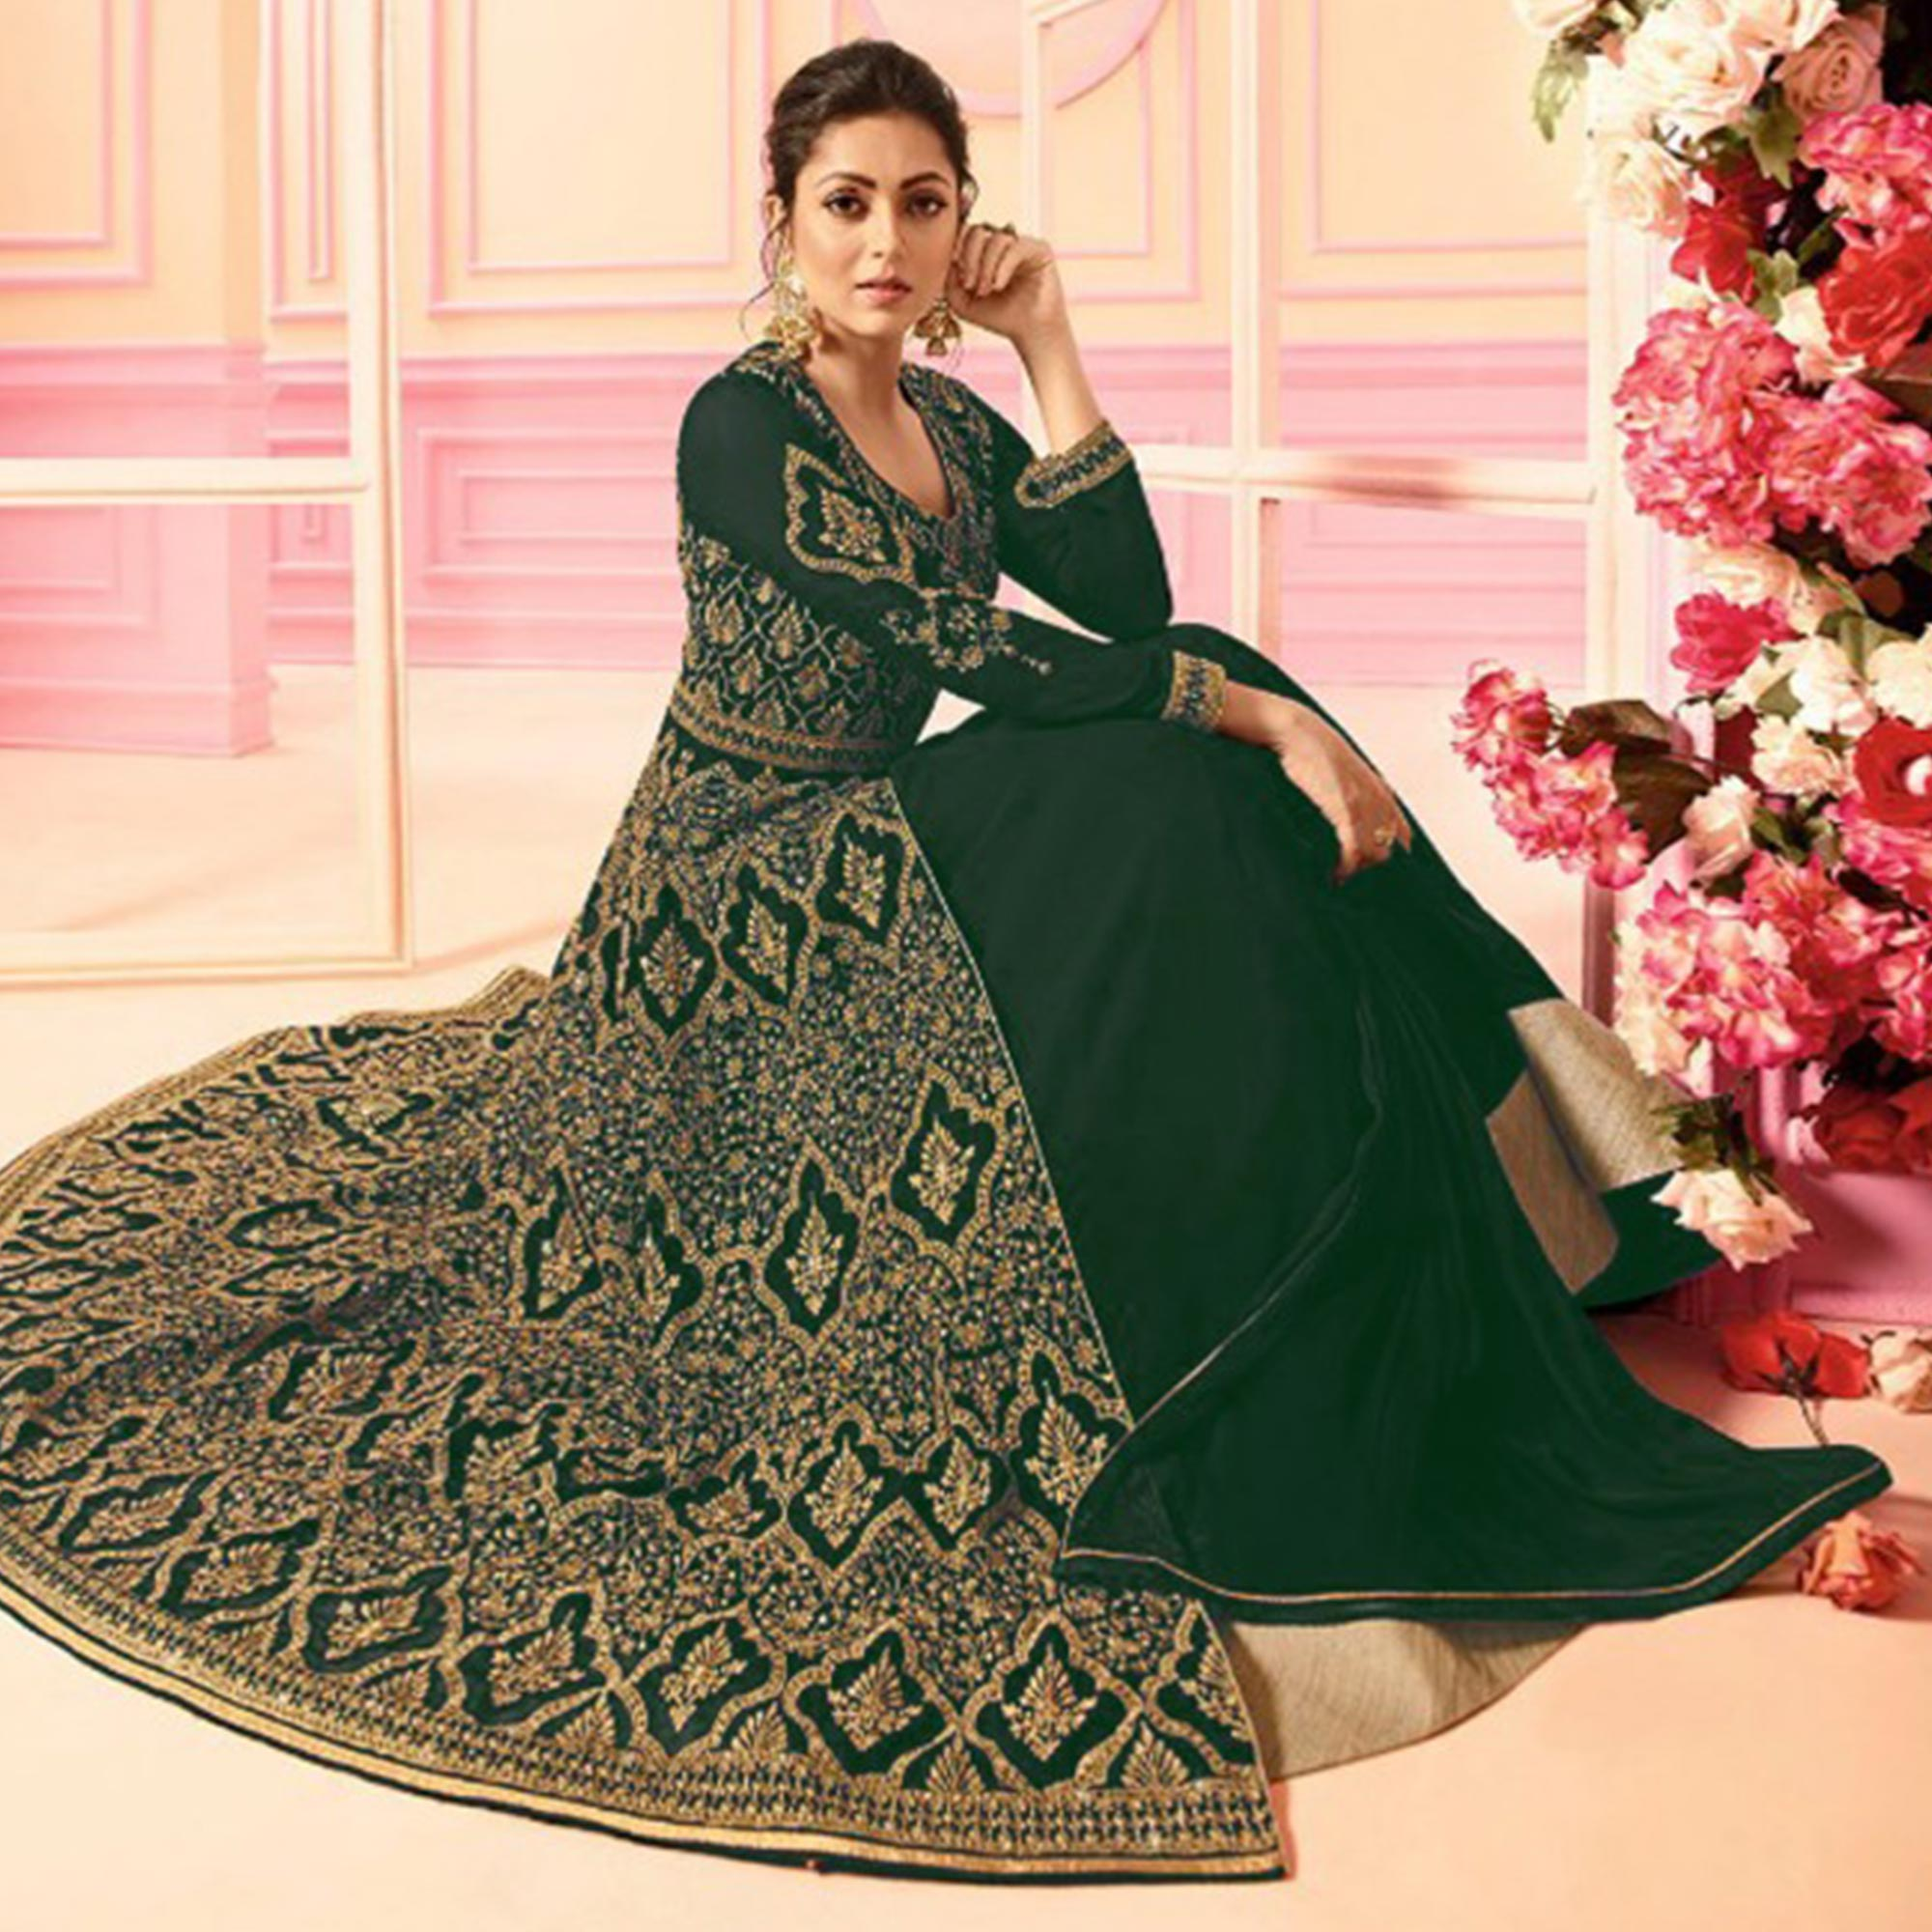 Ravishing Green Colored Party Wear Embroidered Faux Georgette Lehenga Kameez